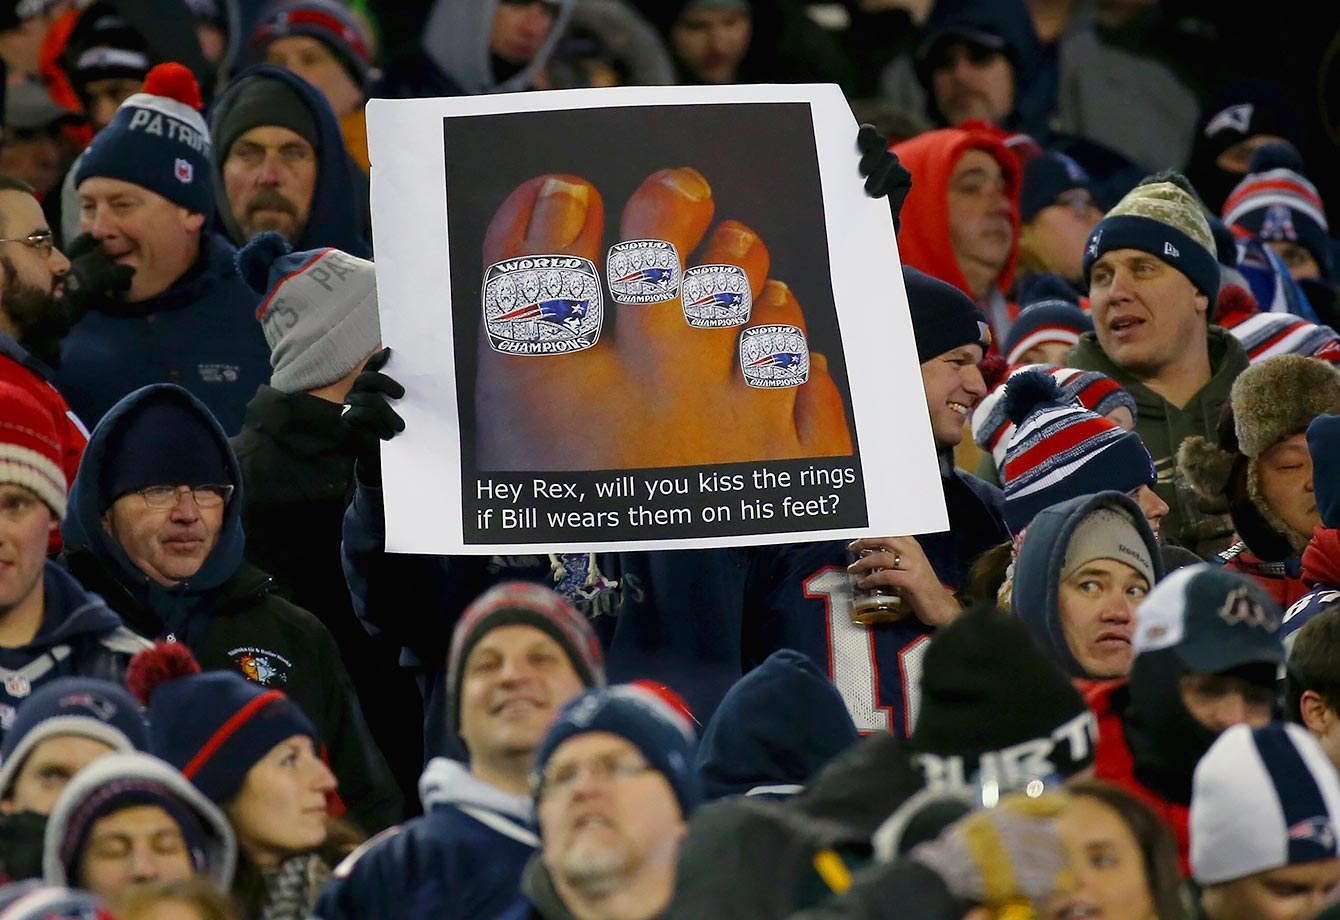 Props to these Patriots fans for working both New England's four Super Bowl victories and Rex Ryan's foot fetish into their sign.